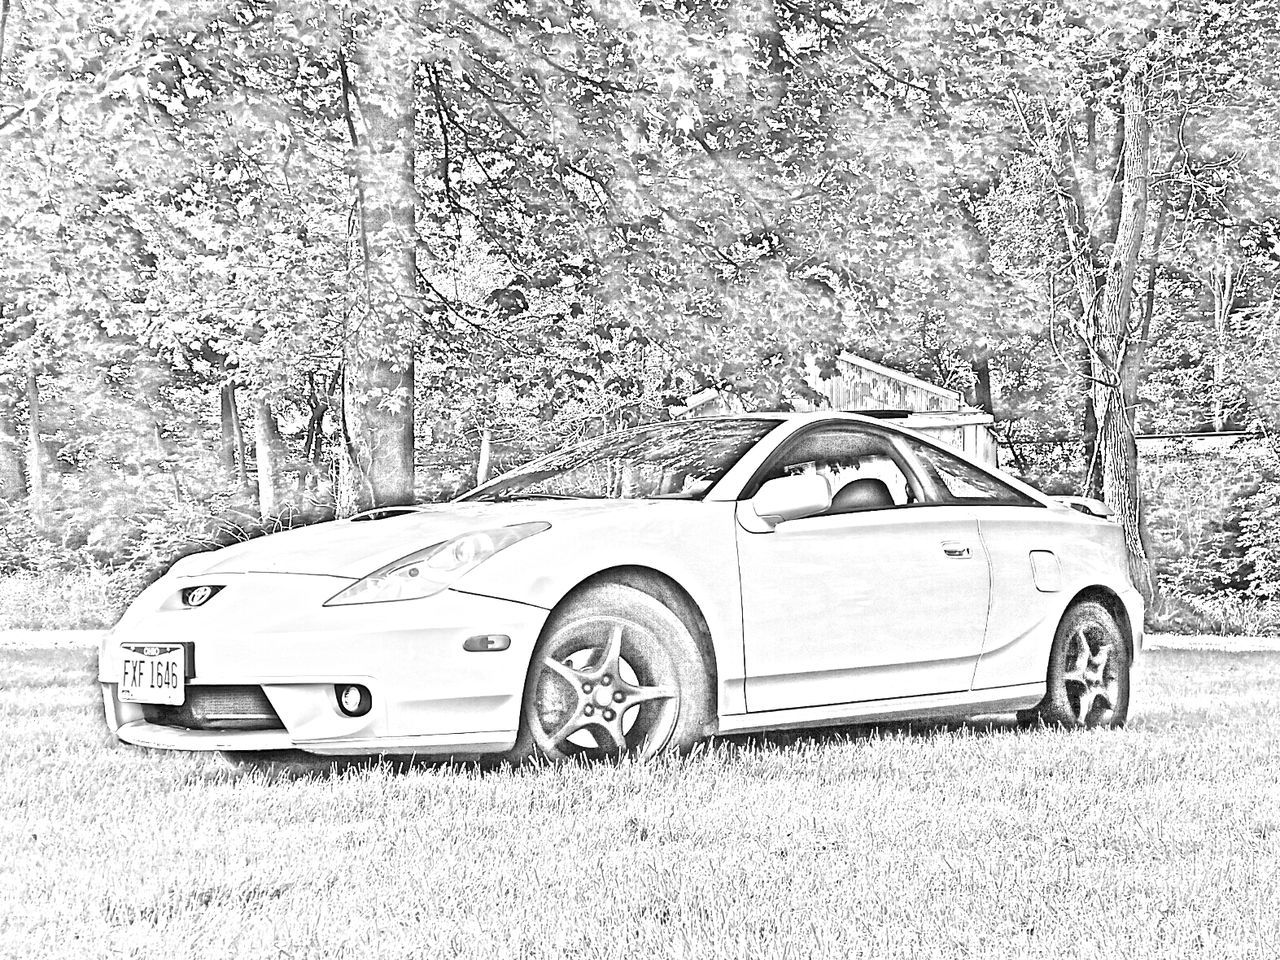 Toyota Celica GT-S in Quicksketch for Display Car Art